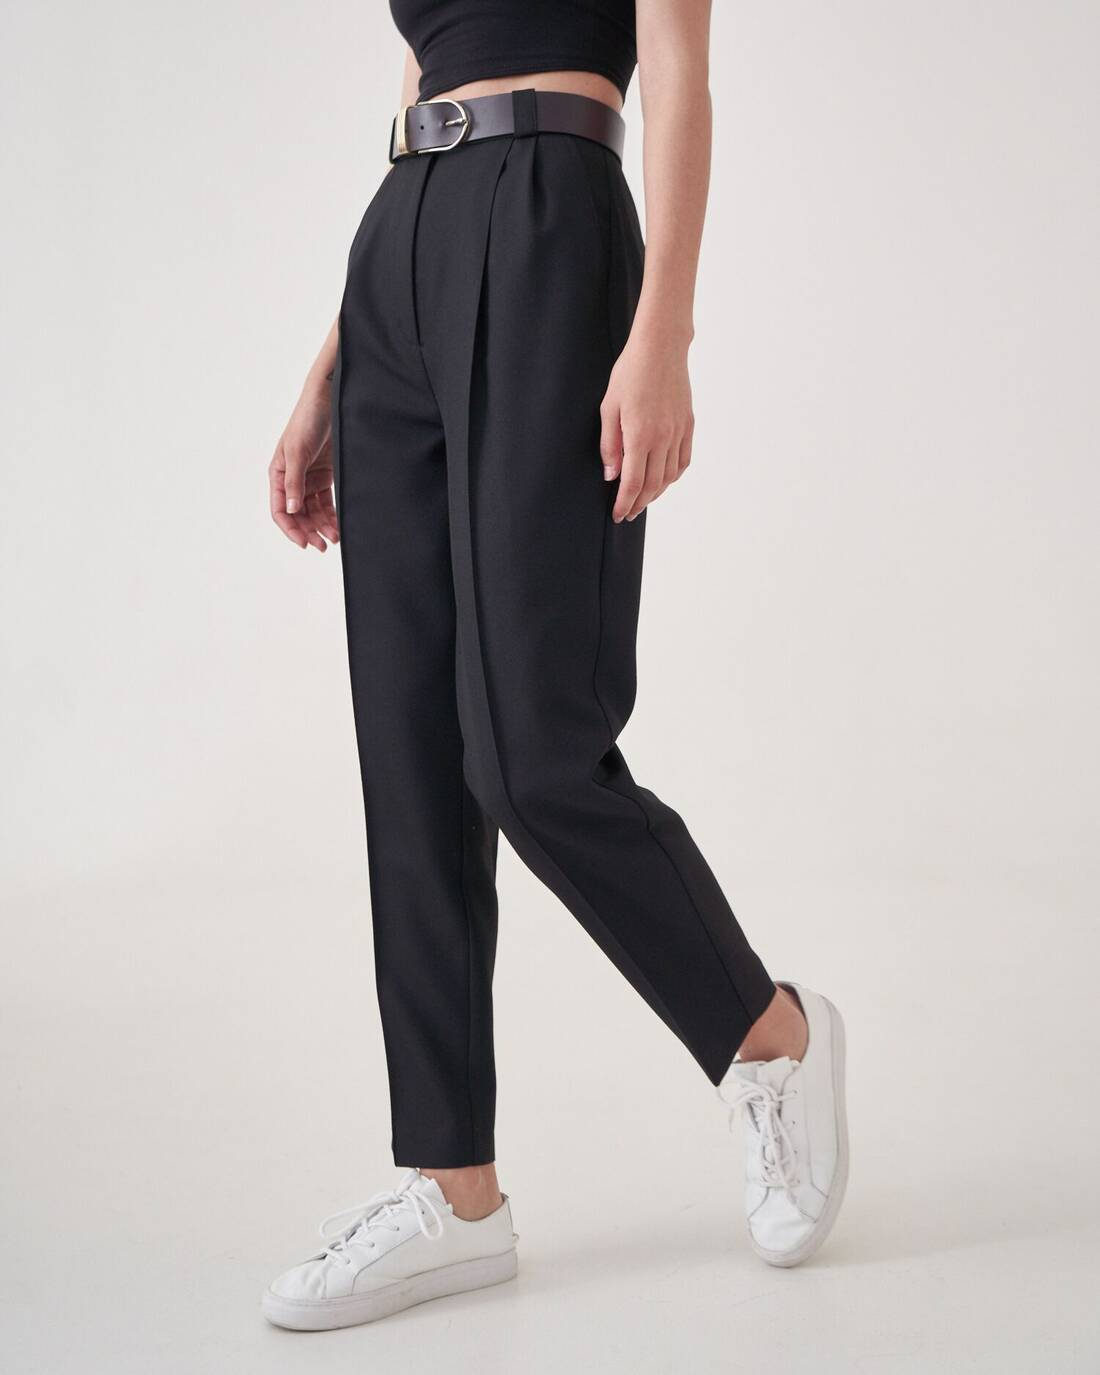 Cigarette pants with seams